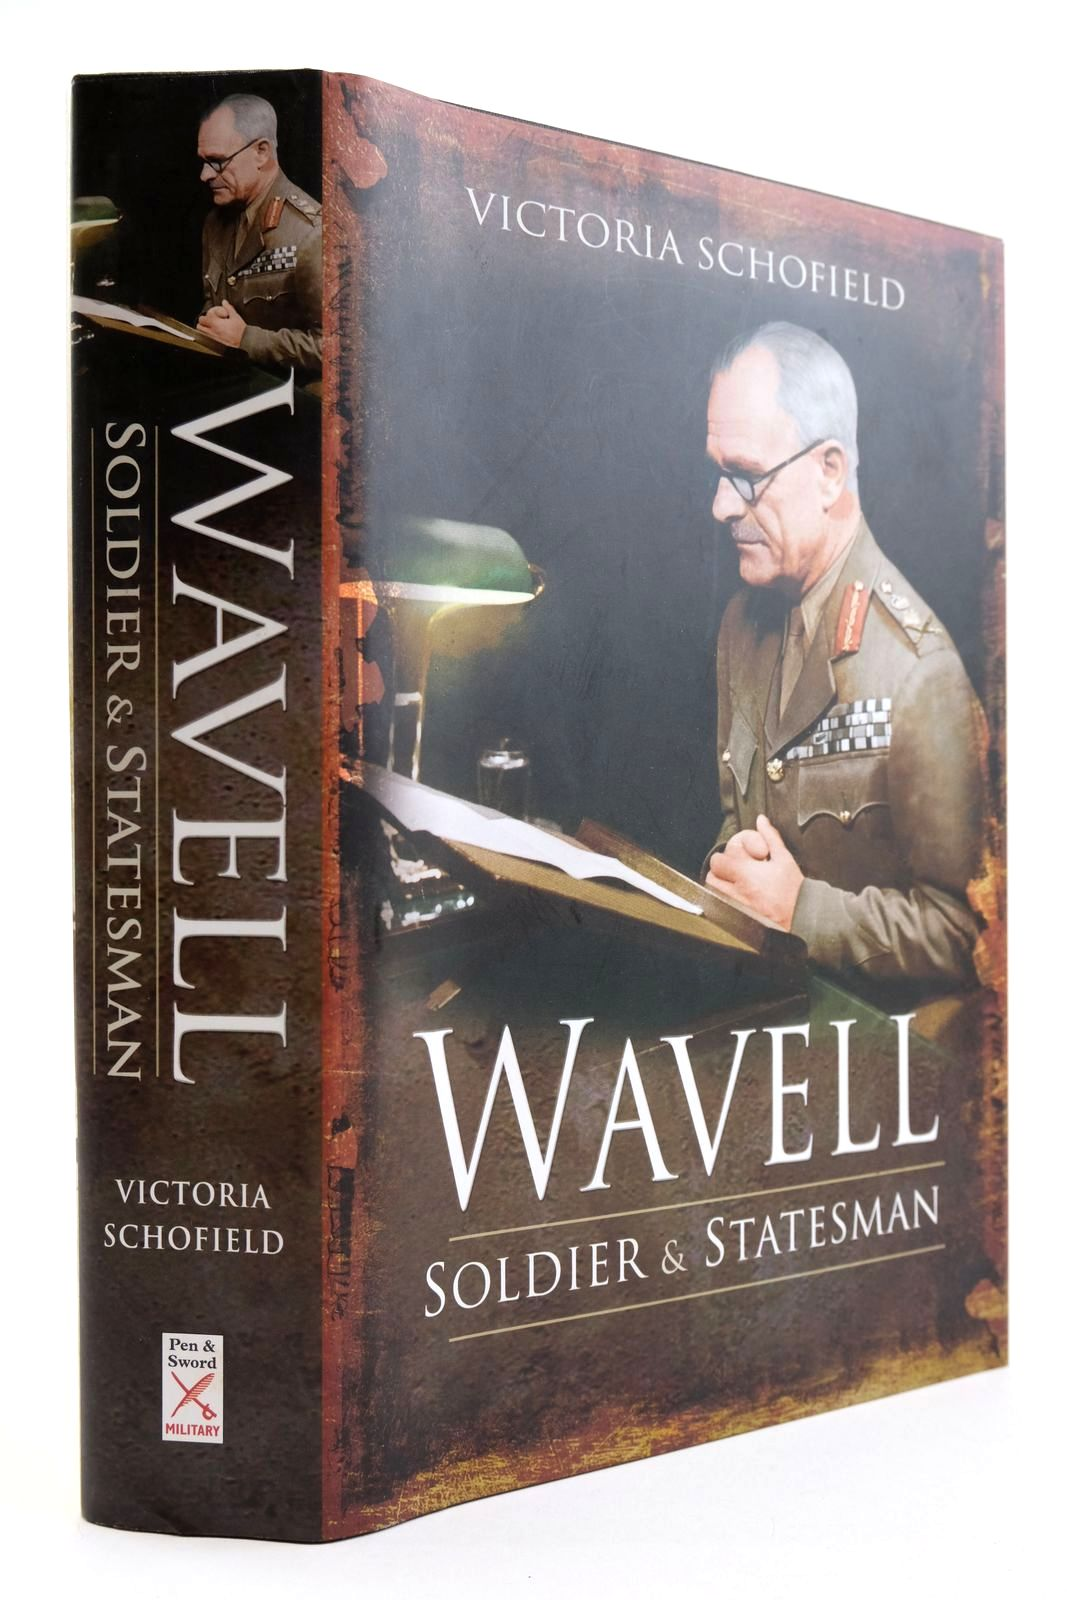 Photo of WAVELL: SOLDIER & STATESMAN written by Schofield, Victoria published by Pen & Sword Military (STOCK CODE: 2134023)  for sale by Stella & Rose's Books